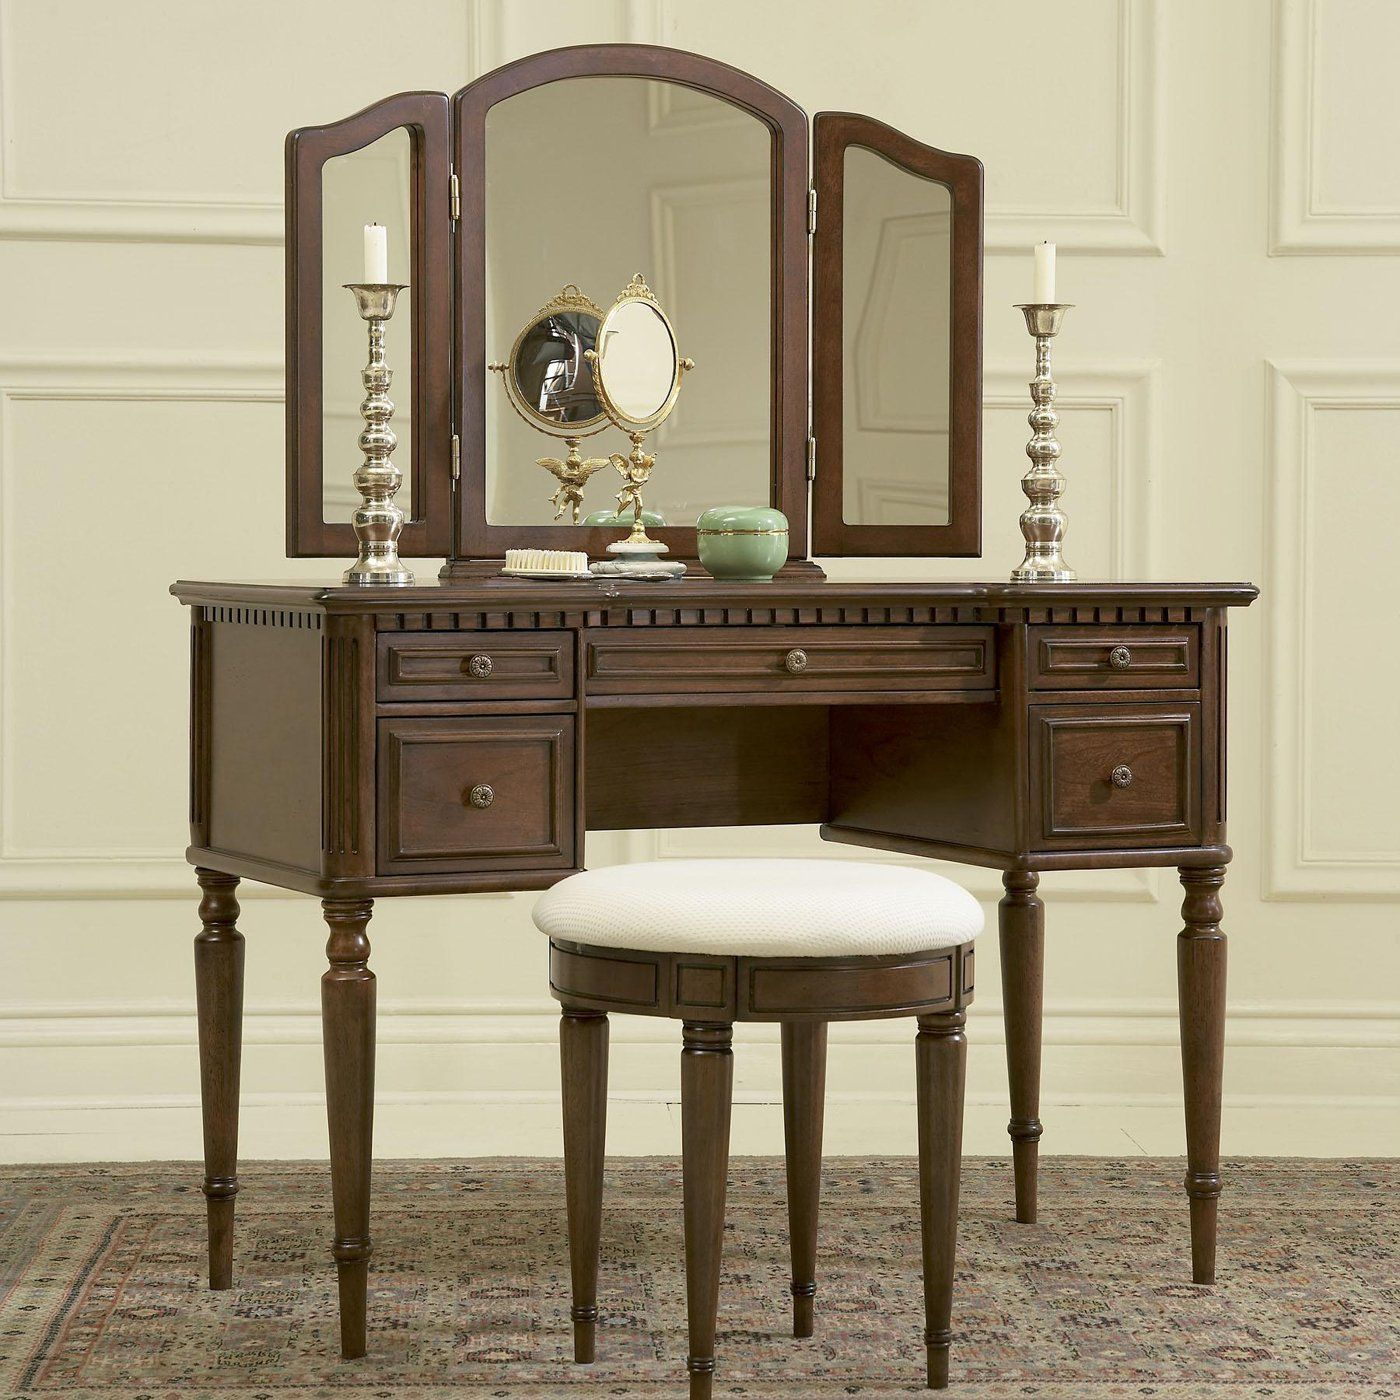 Powell 429-290 Warm Cherry Mirror Bench Bedroom Vanity